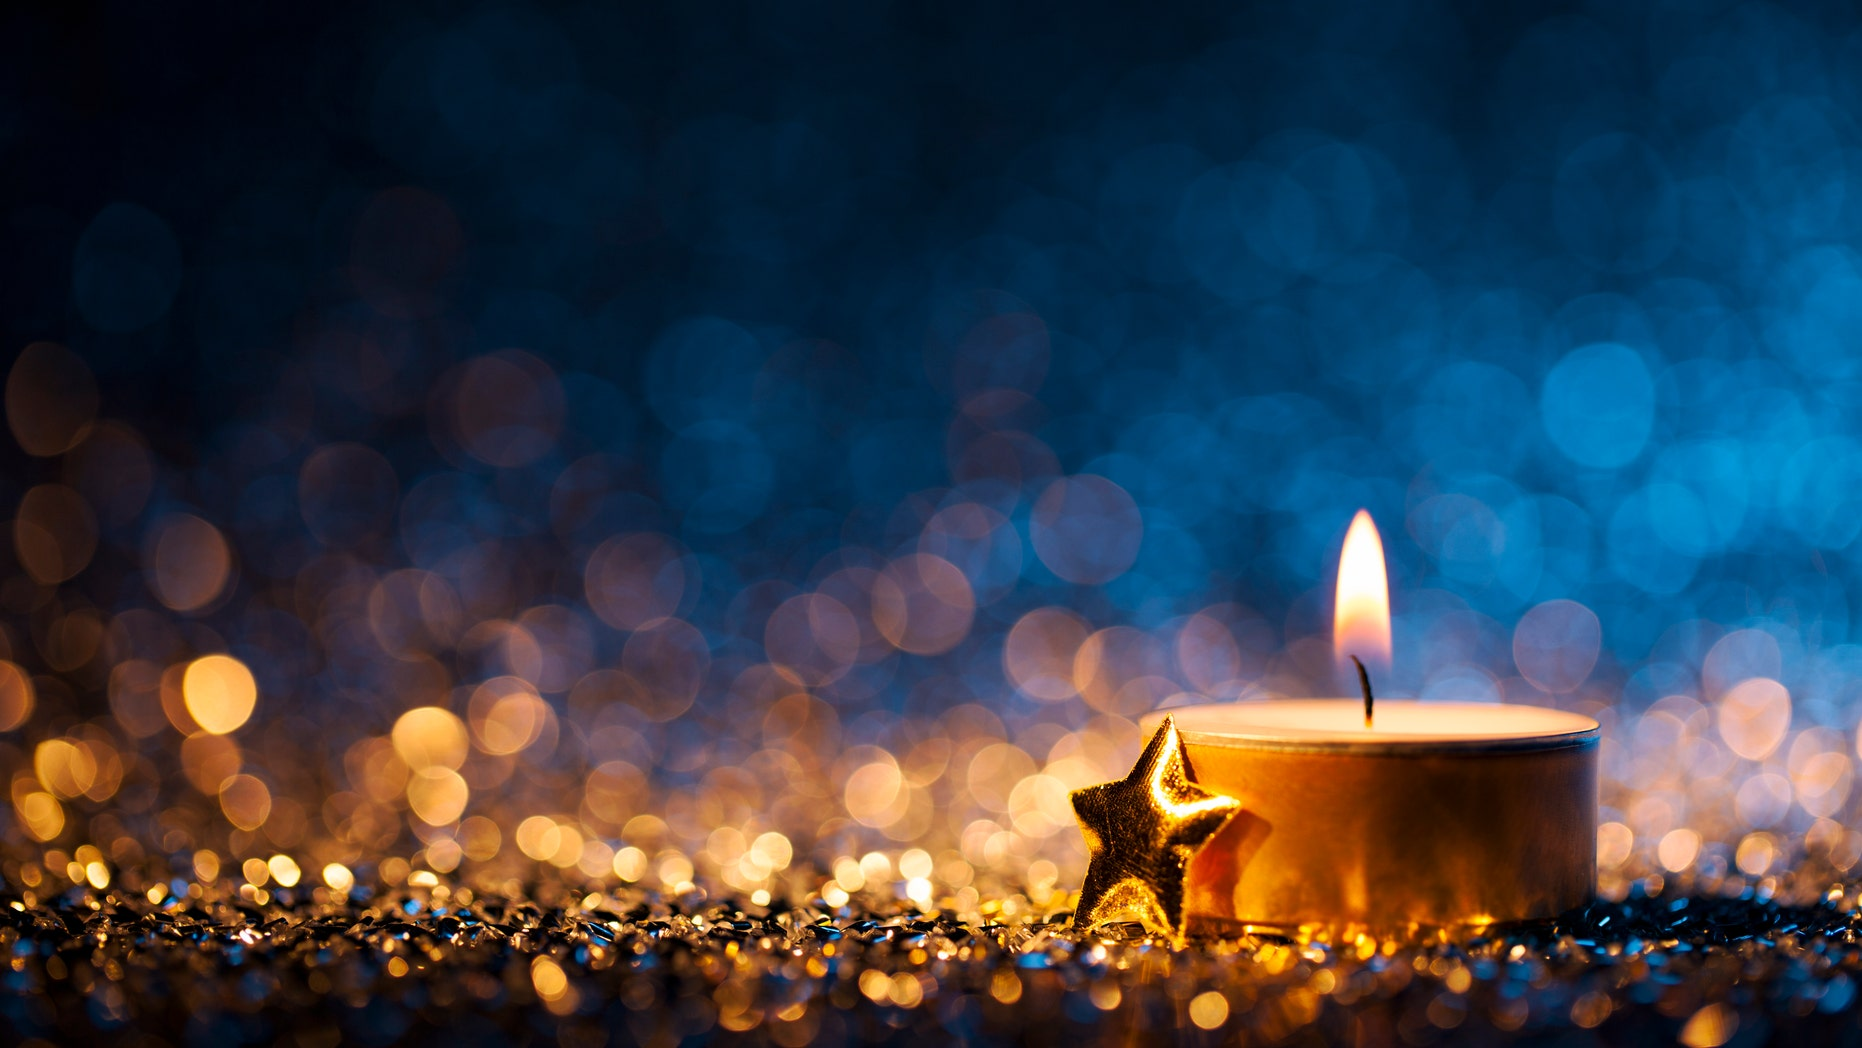 Tea light and a golden star on defocused blue and gold background.